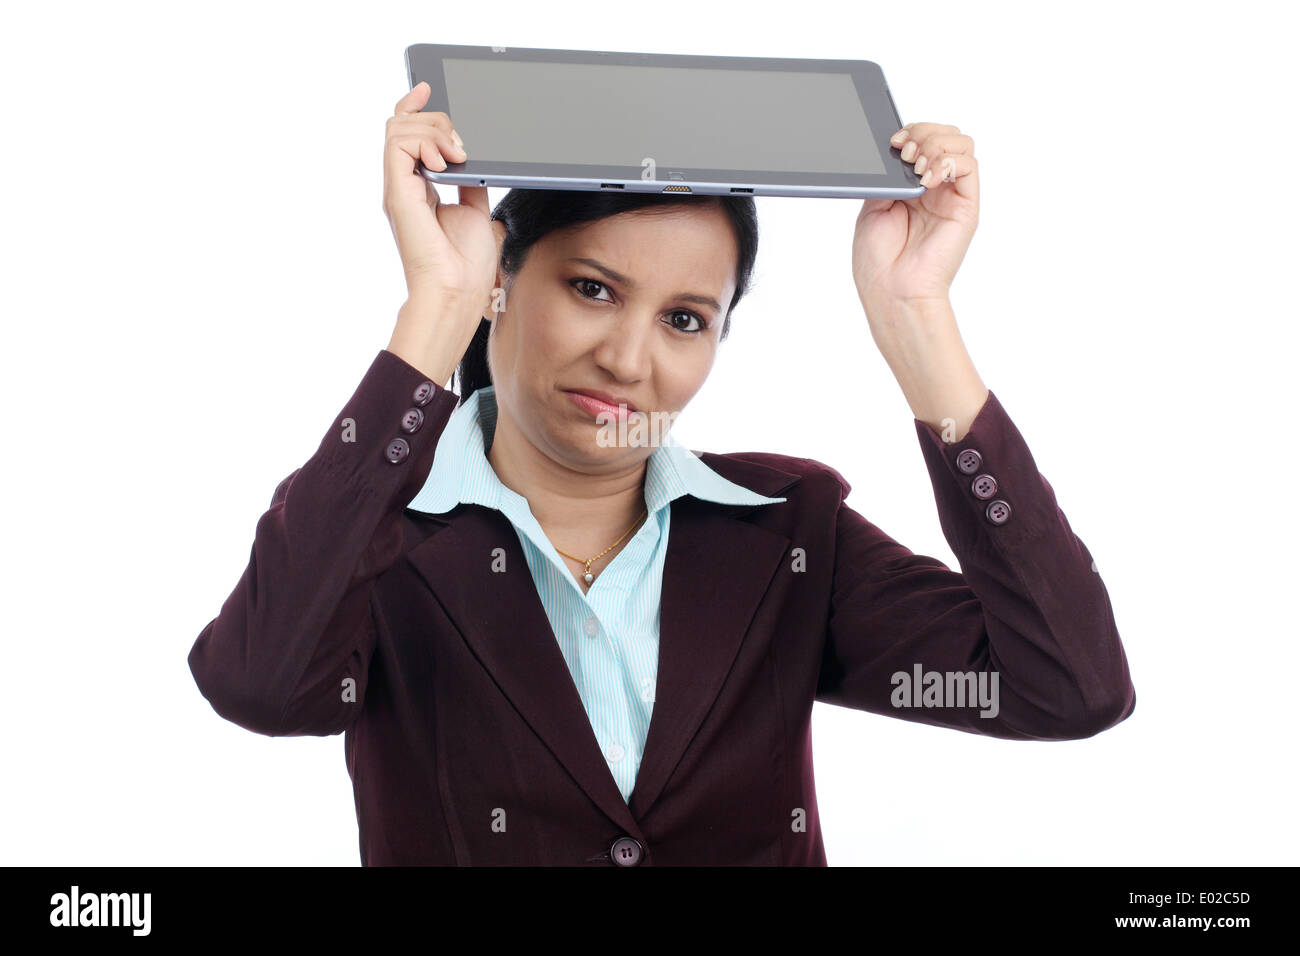 Angry businesswoman throwing her tablet computer - Stock Image